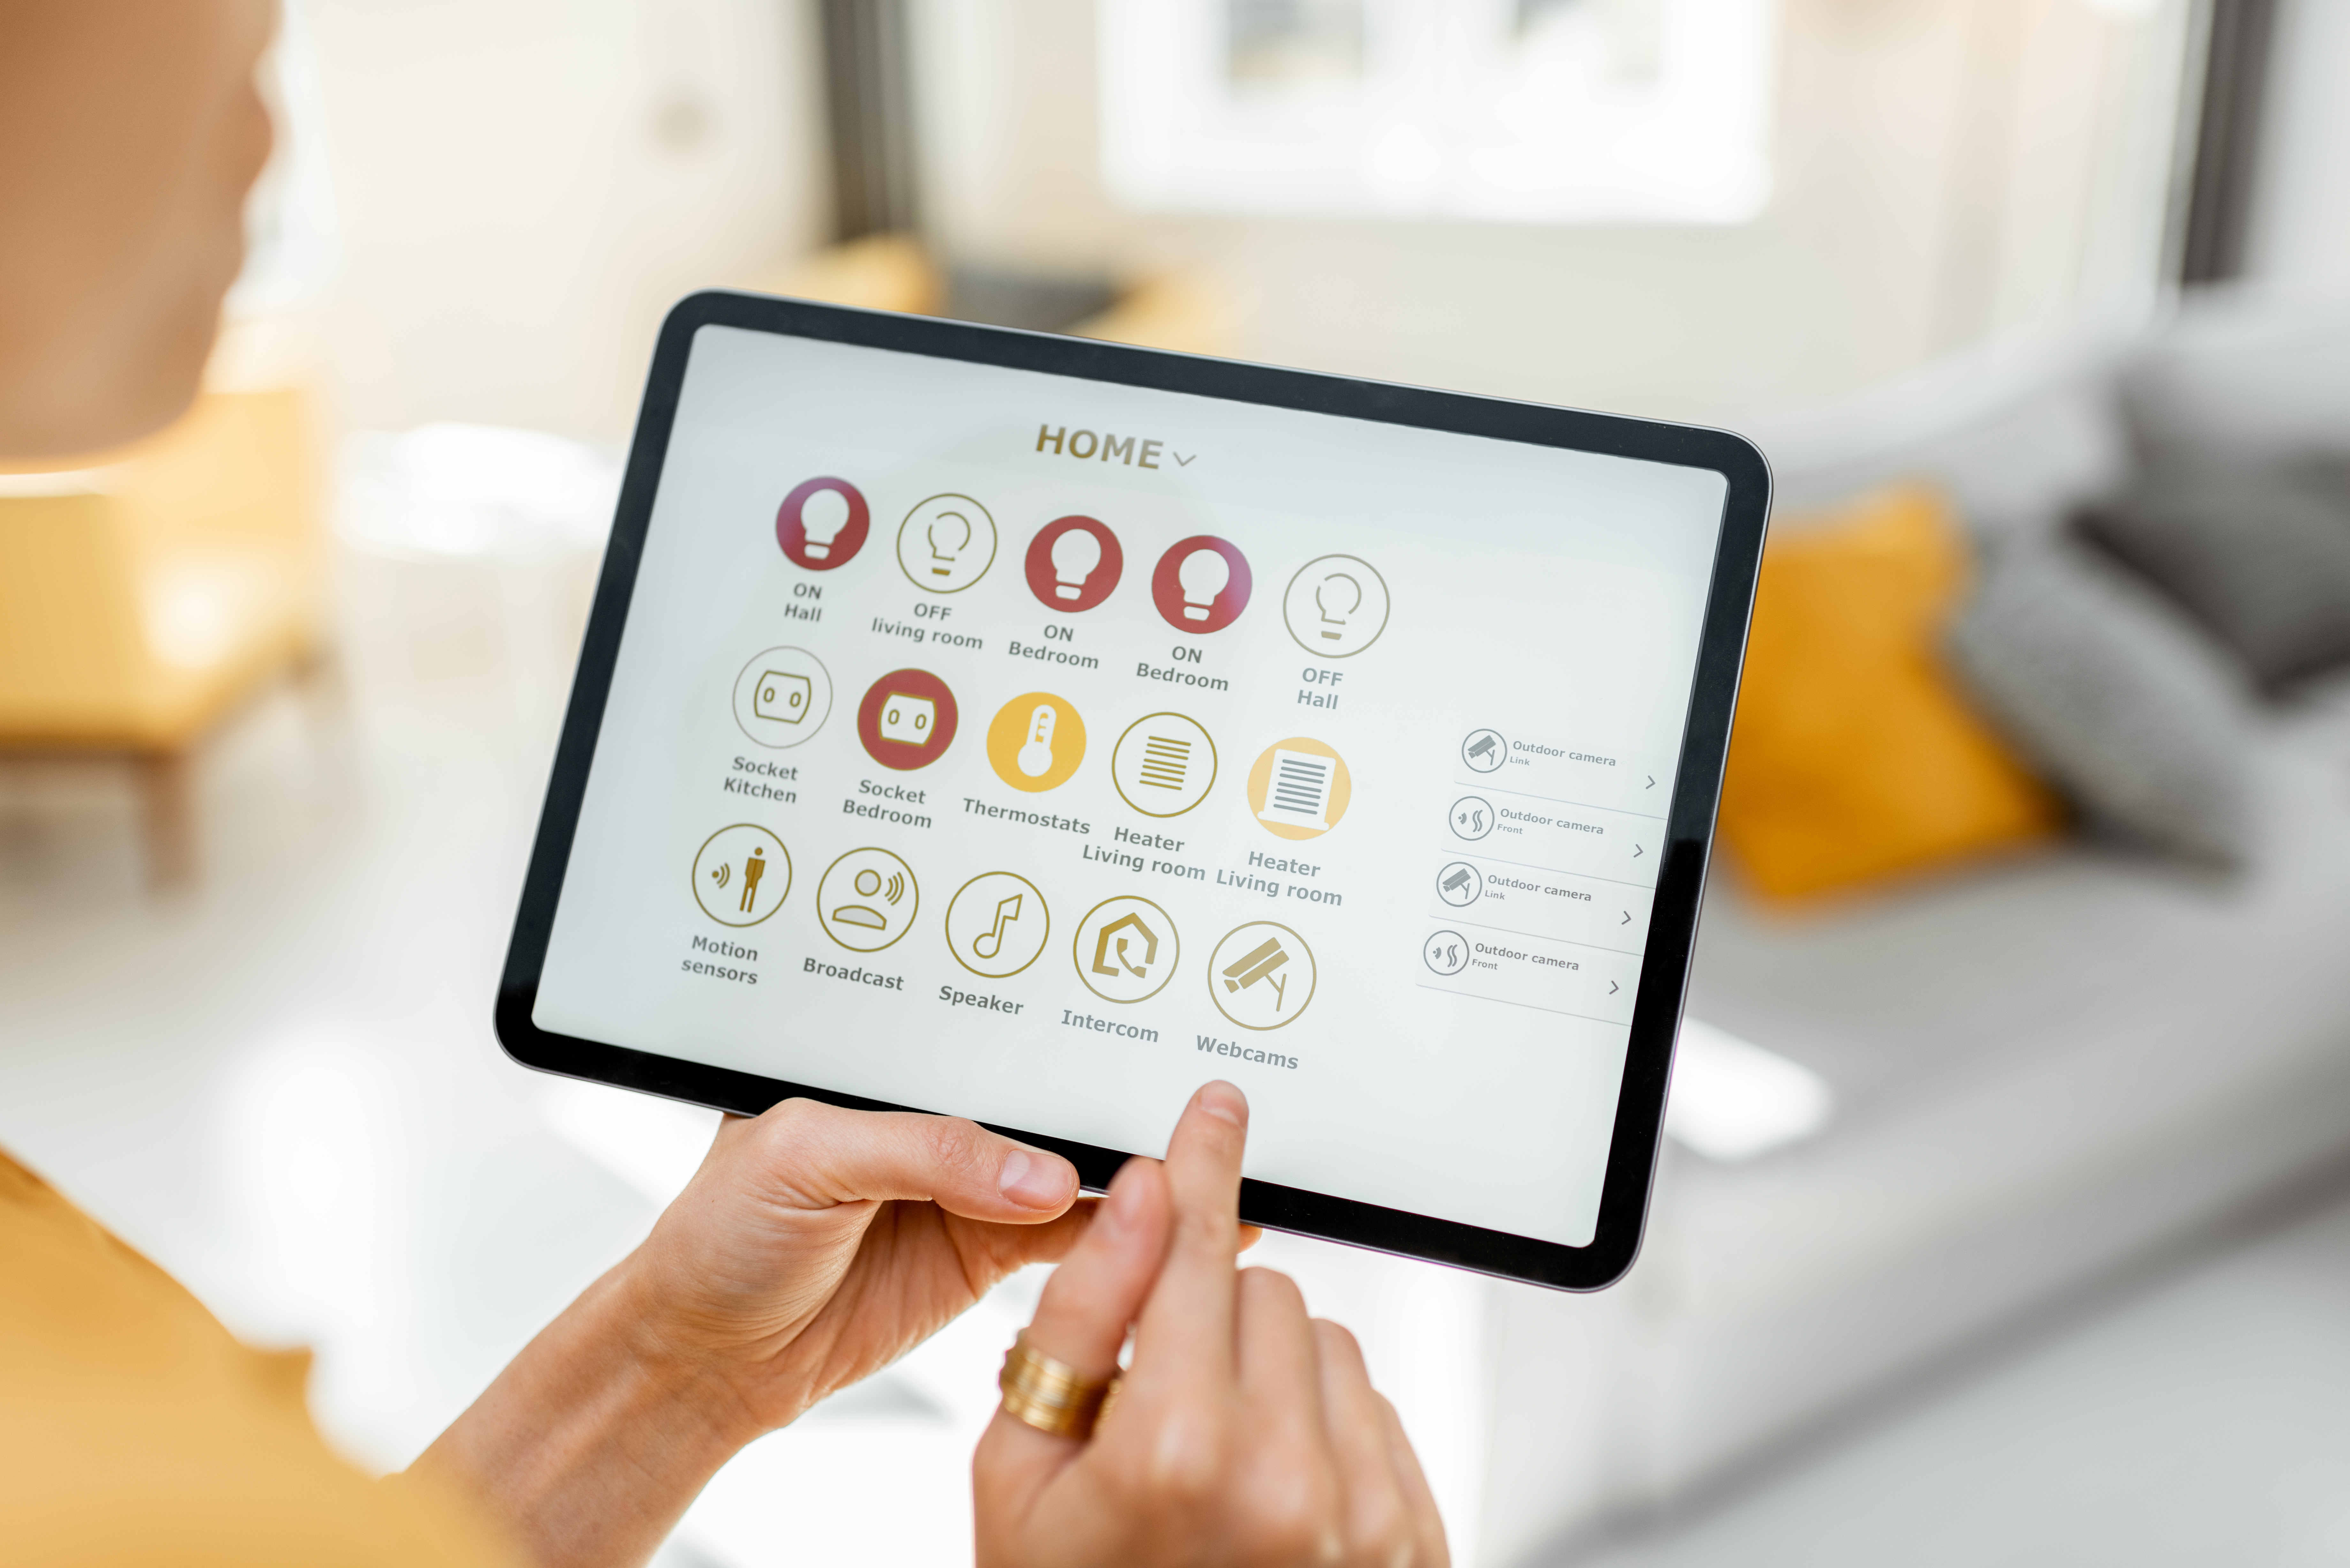 controlling-smart-home-devices-using-a-digital-tab-CYYBTR7